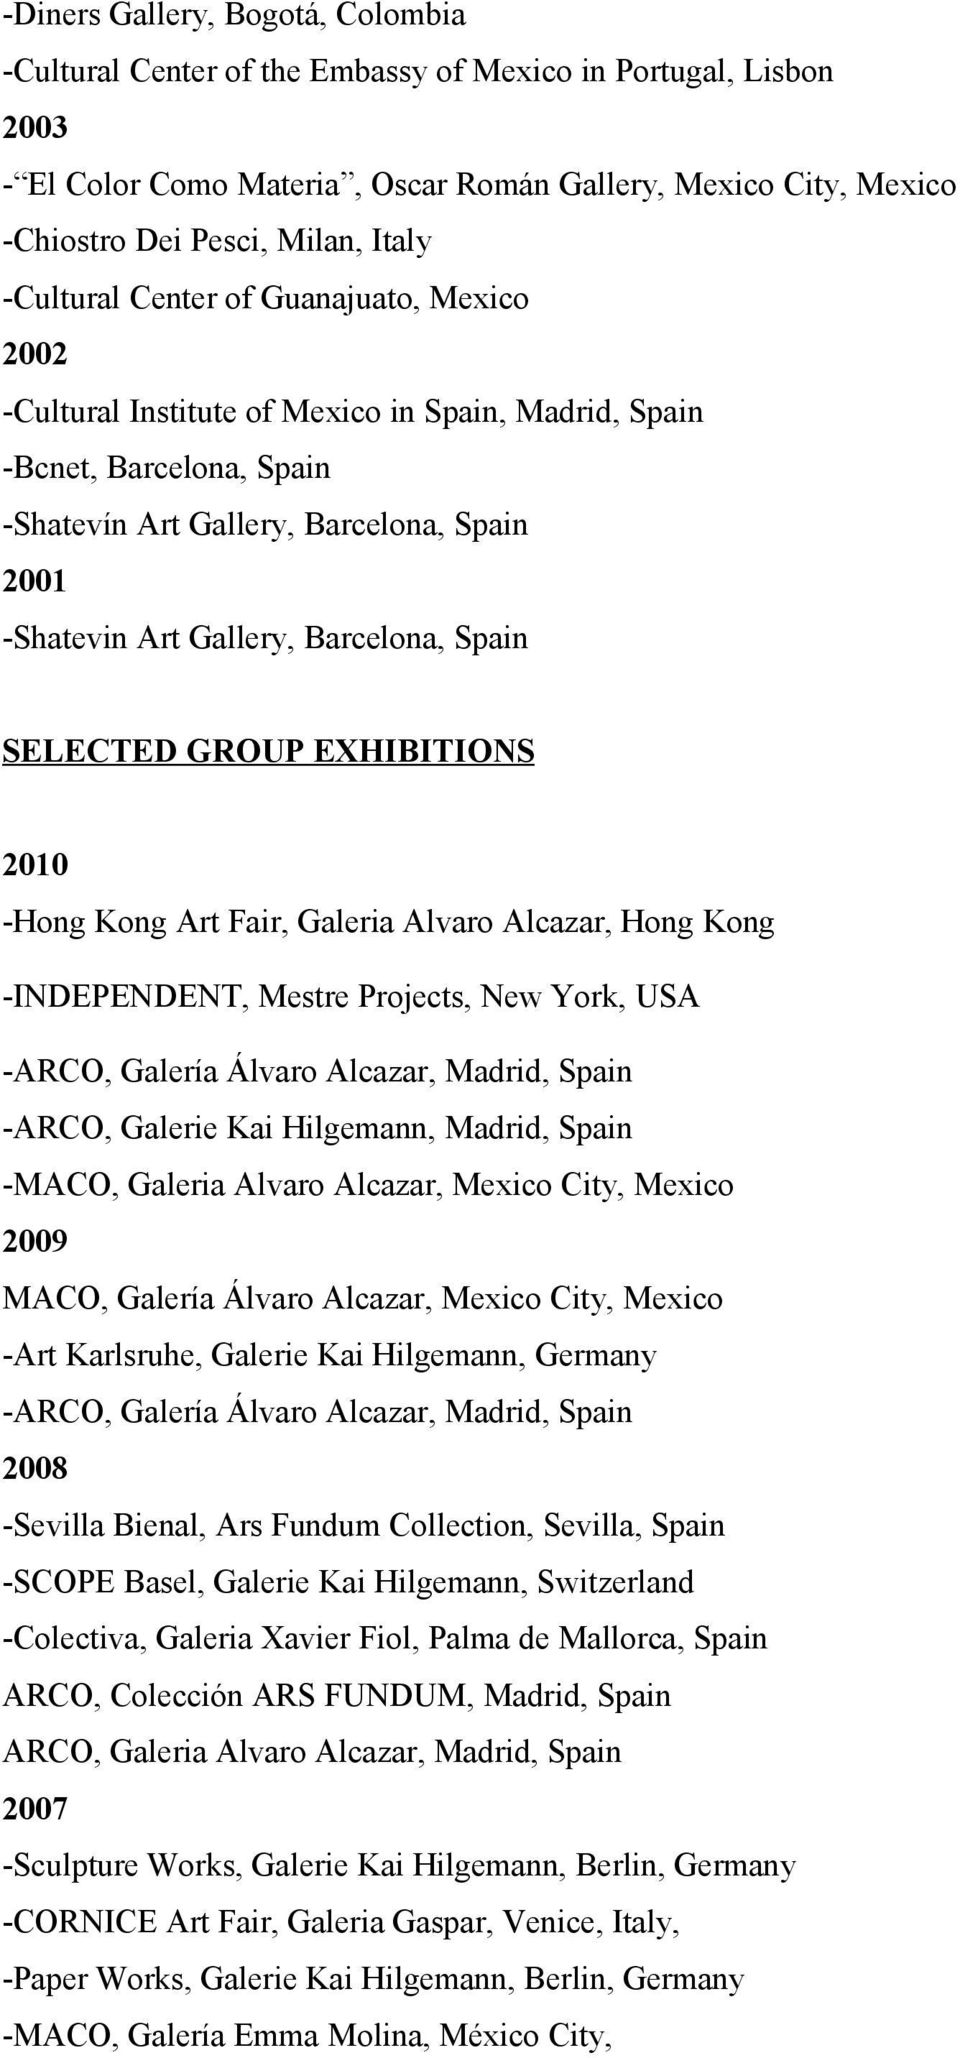 Barcelona, Spain SELECTED GROUP EXHIBITIONS 2010 -Hong Kong Art Fair, Galeria Alvaro Alcazar, Hong Kong -INDEPENDENT, Mestre Projects, New York, USA -ARCO, Galería Álvaro Alcazar, Madrid, Spain